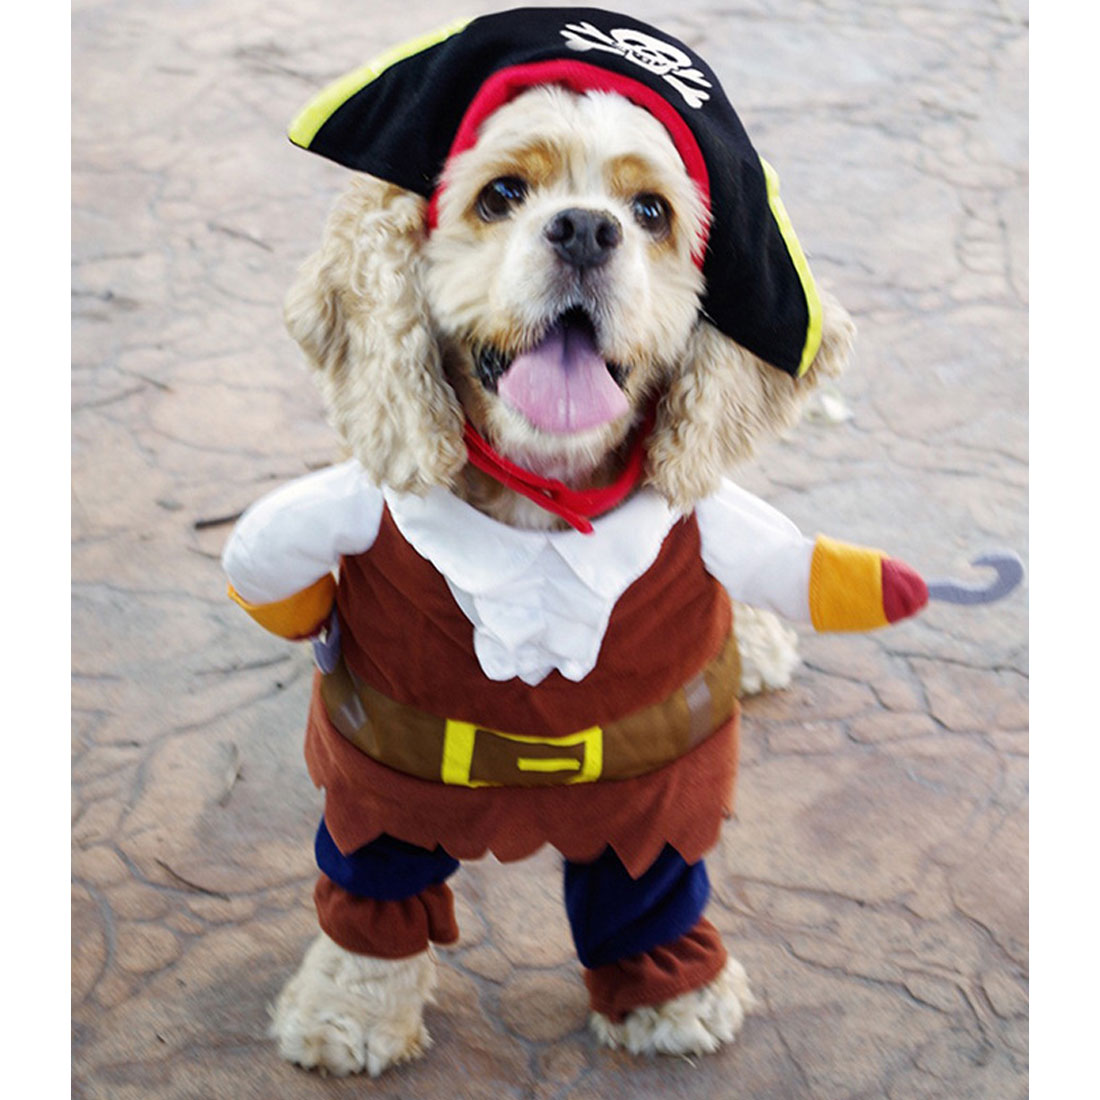 Good Funny Cat Costume Pirate Suit Cat Clothes Corsair Halloween Costume Puppy Suit Dressing Up Party Clothes For Cat